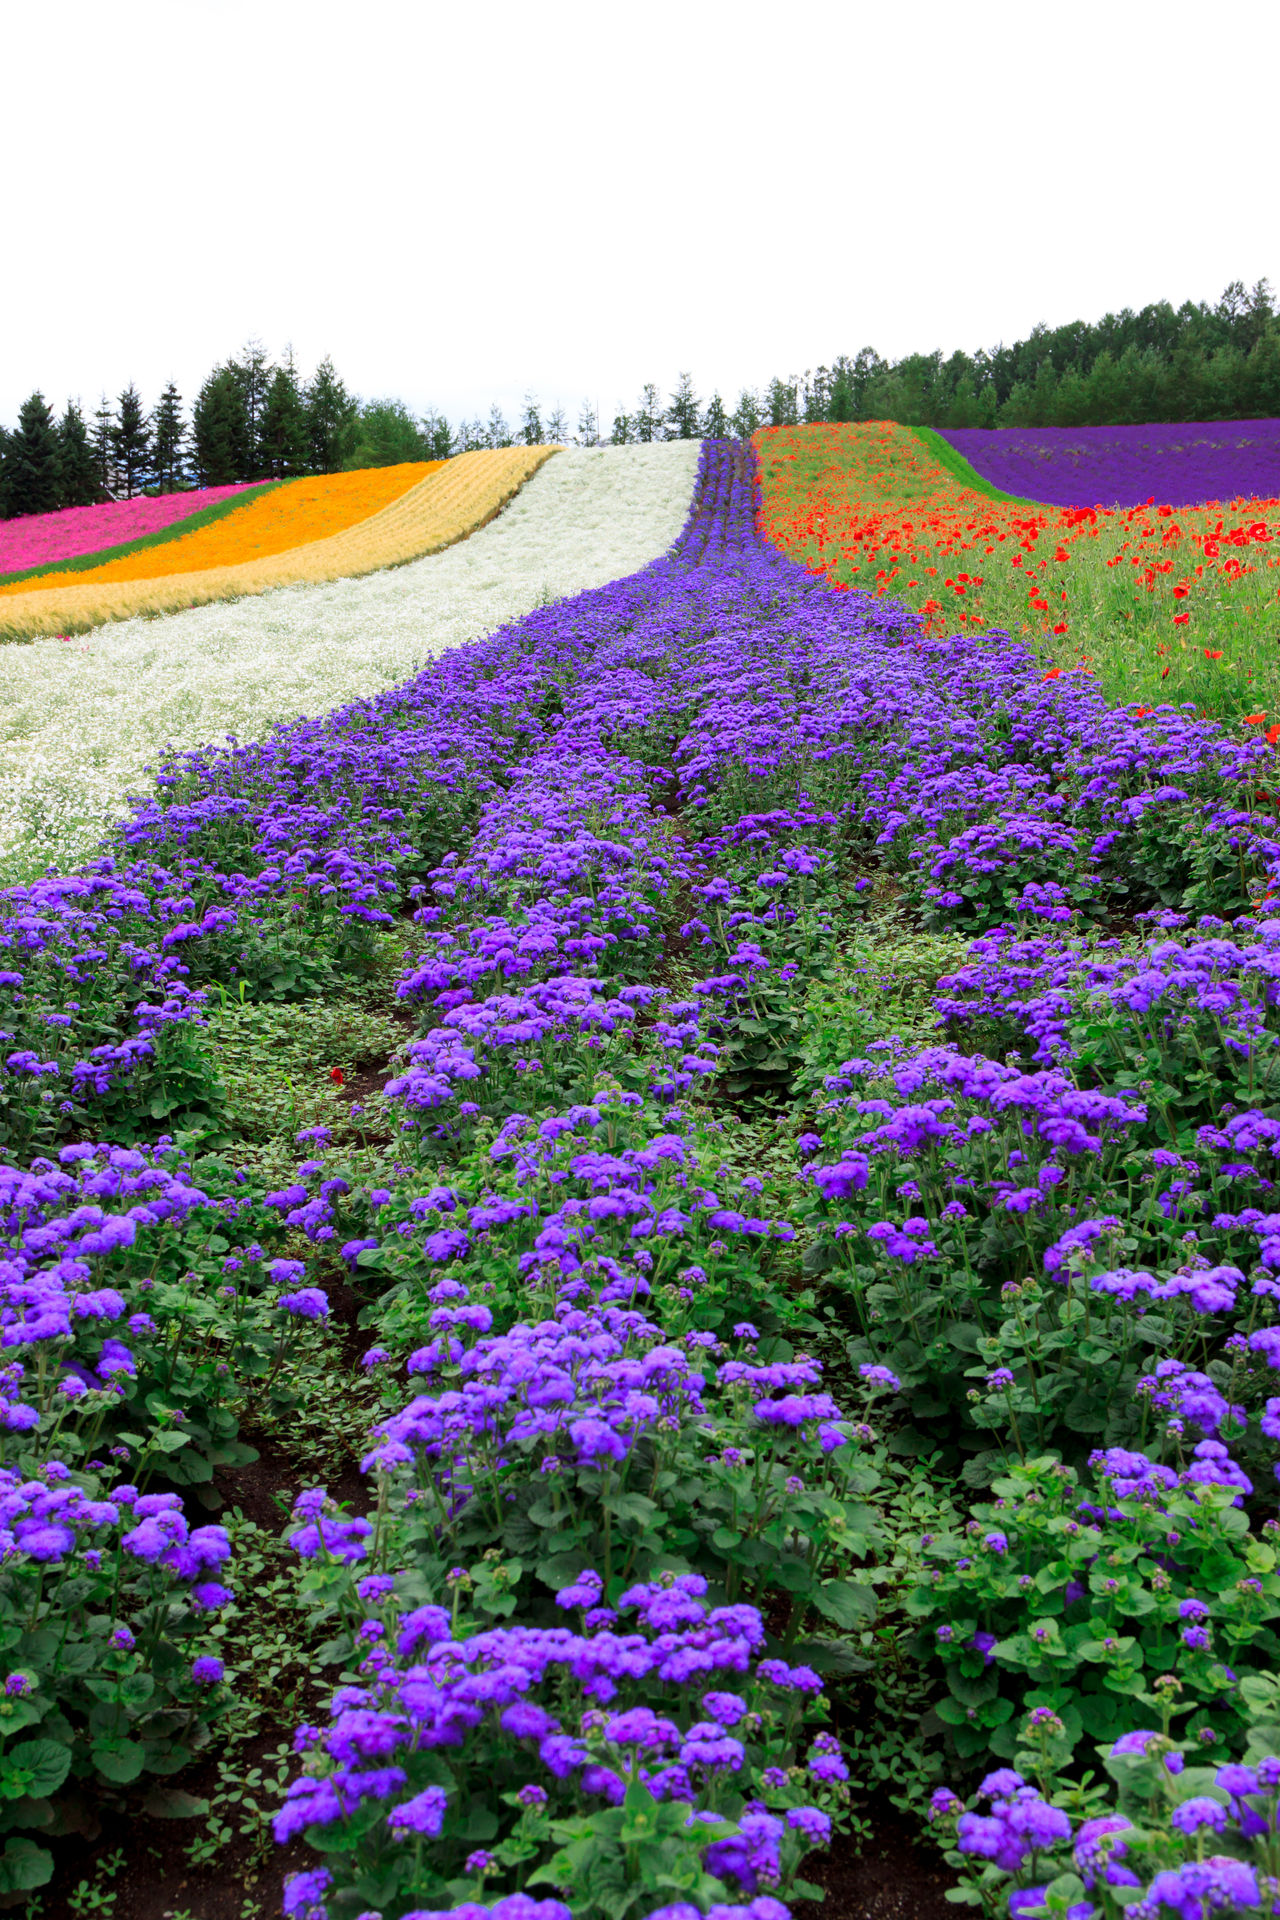 Lavender and other flowers bloom like a carpet Agriculture Beauty In Nature Day Field Flower Flowerbed Freshness Furano Growth Landscape Multi Colored Nature No People Outdoors Plant Purple Rural Scene Scenics Sky Tranquil Scene Tranquility Tree